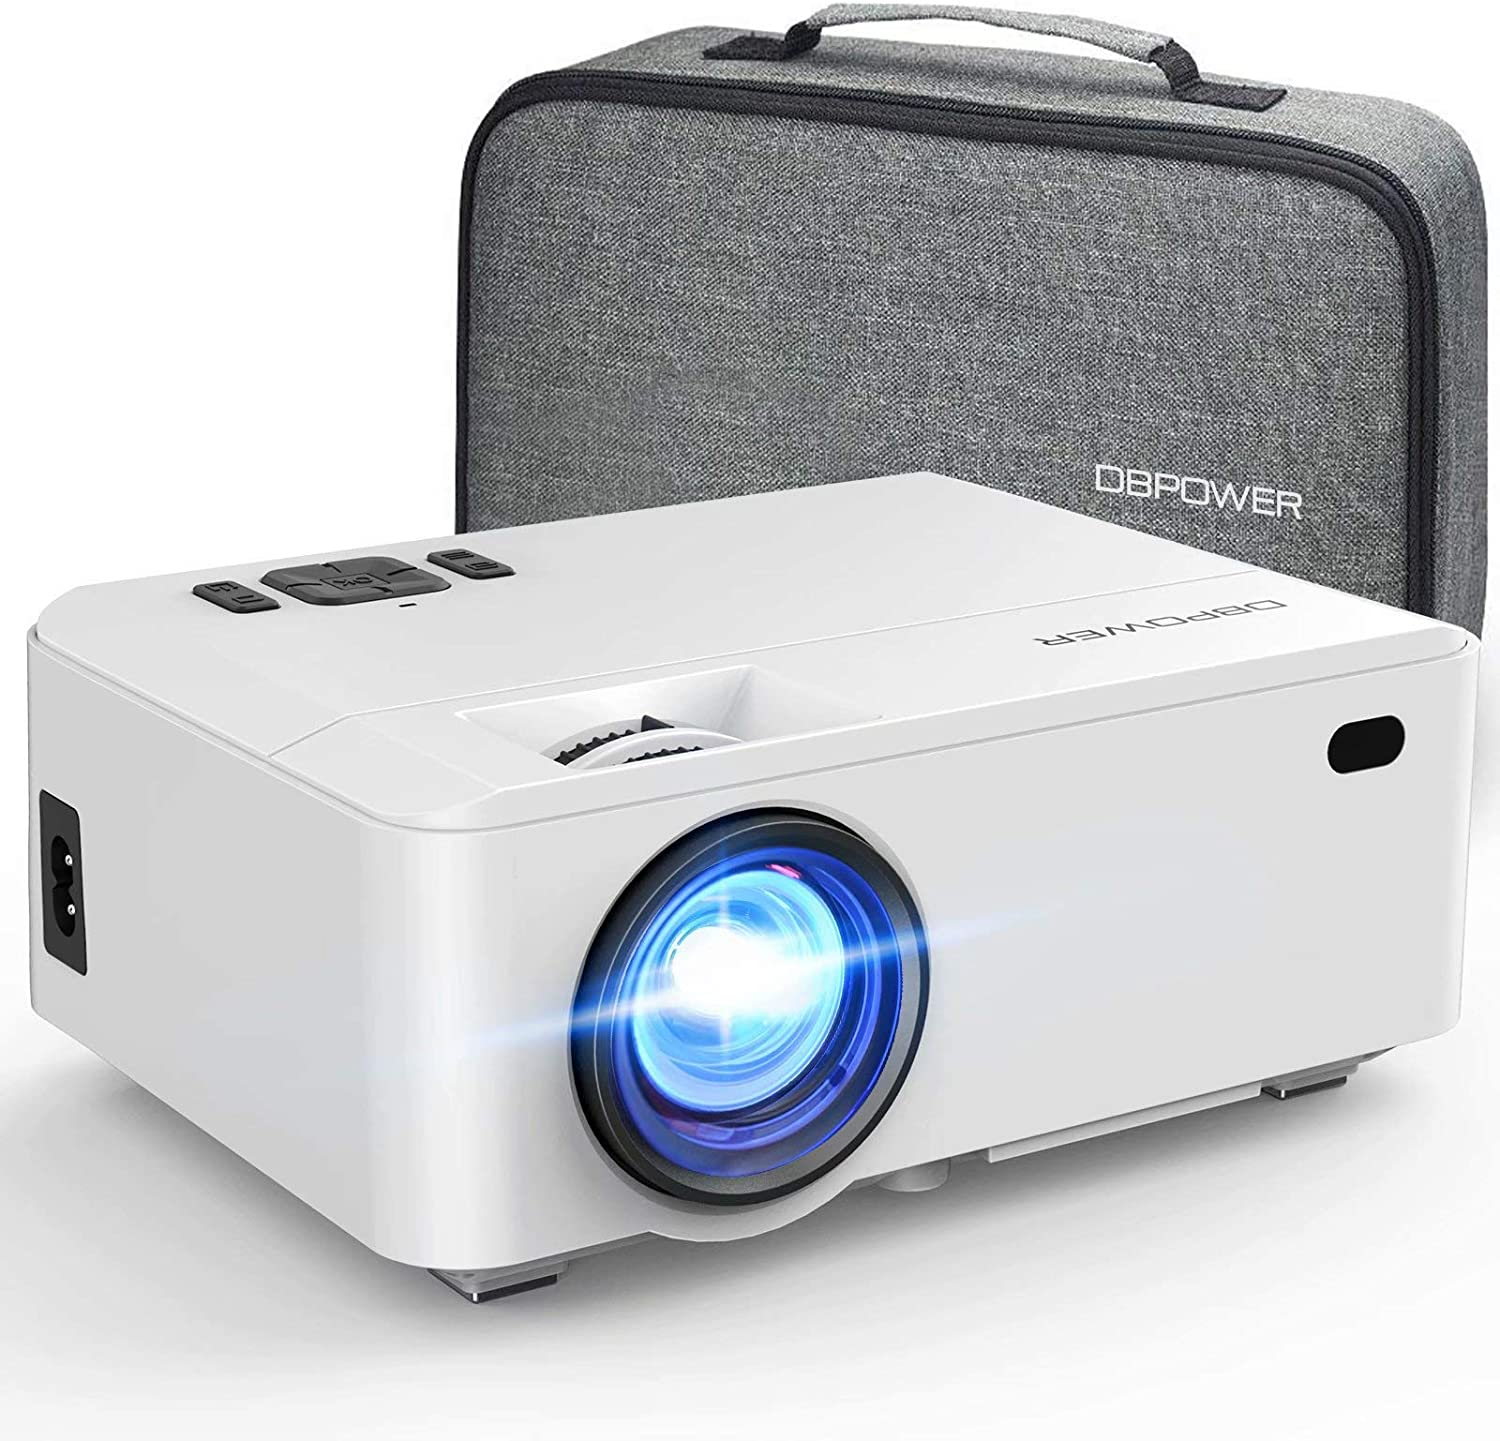 Dbpower RD-820 1080p  5500Lux Mini Projector $48 Coupon